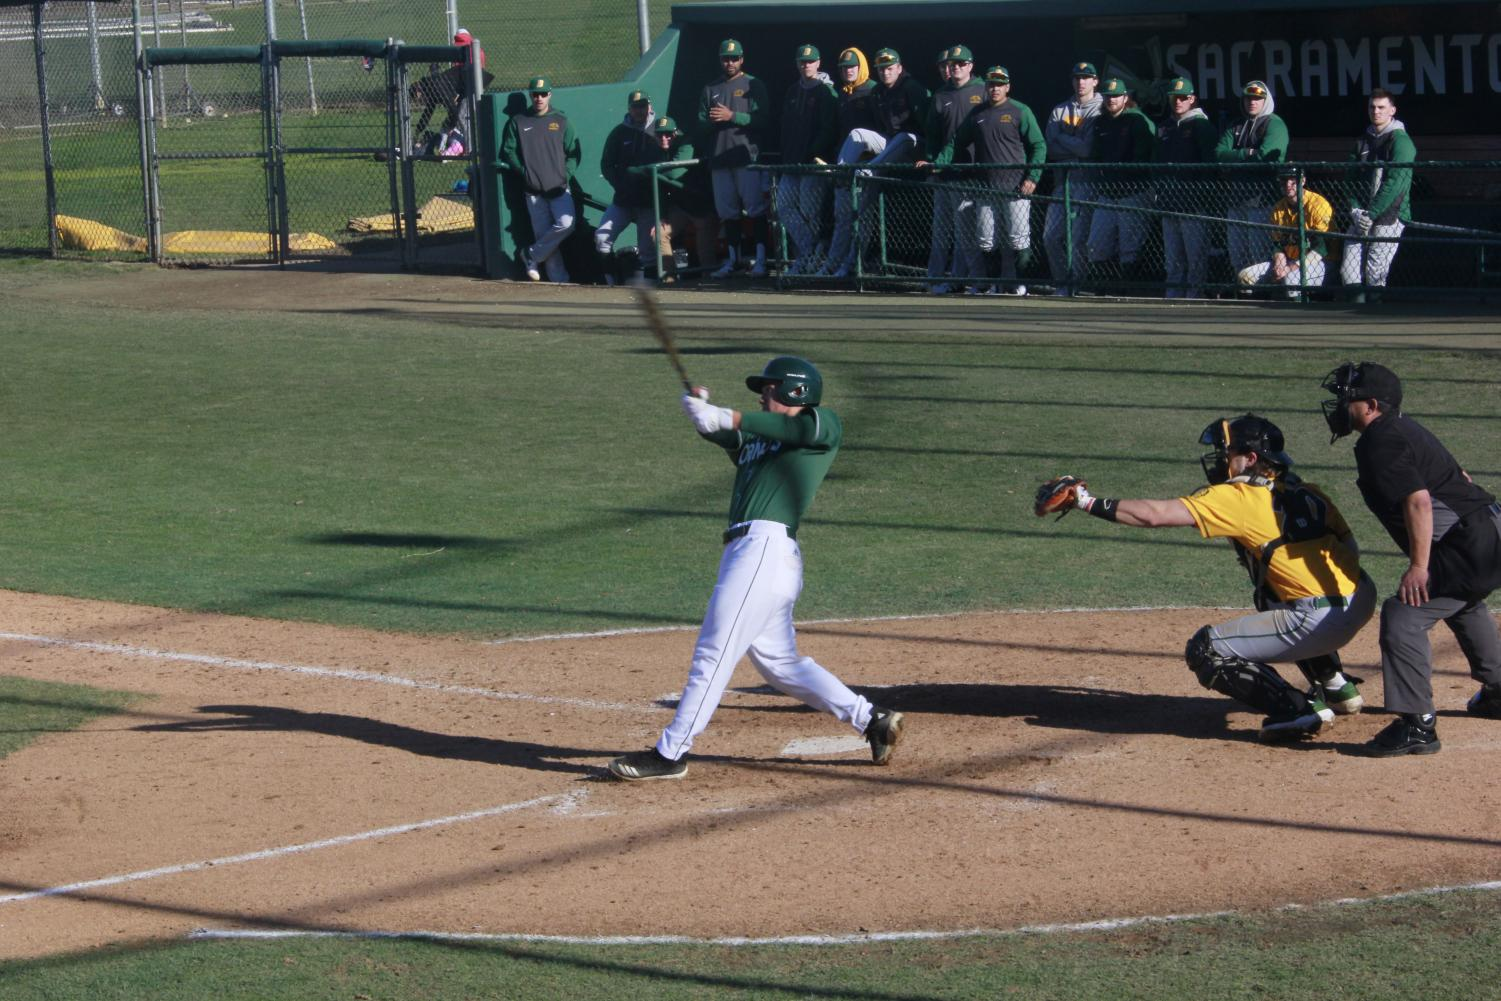 Sophomore+infielder+Nick+Iwasa+hits+a+walk-off+single+to+right+field+in+a+2-1+win+over+North+Dakota+St.+on+Sunday%2C+Feb.+17+at+John+Smith+Field.